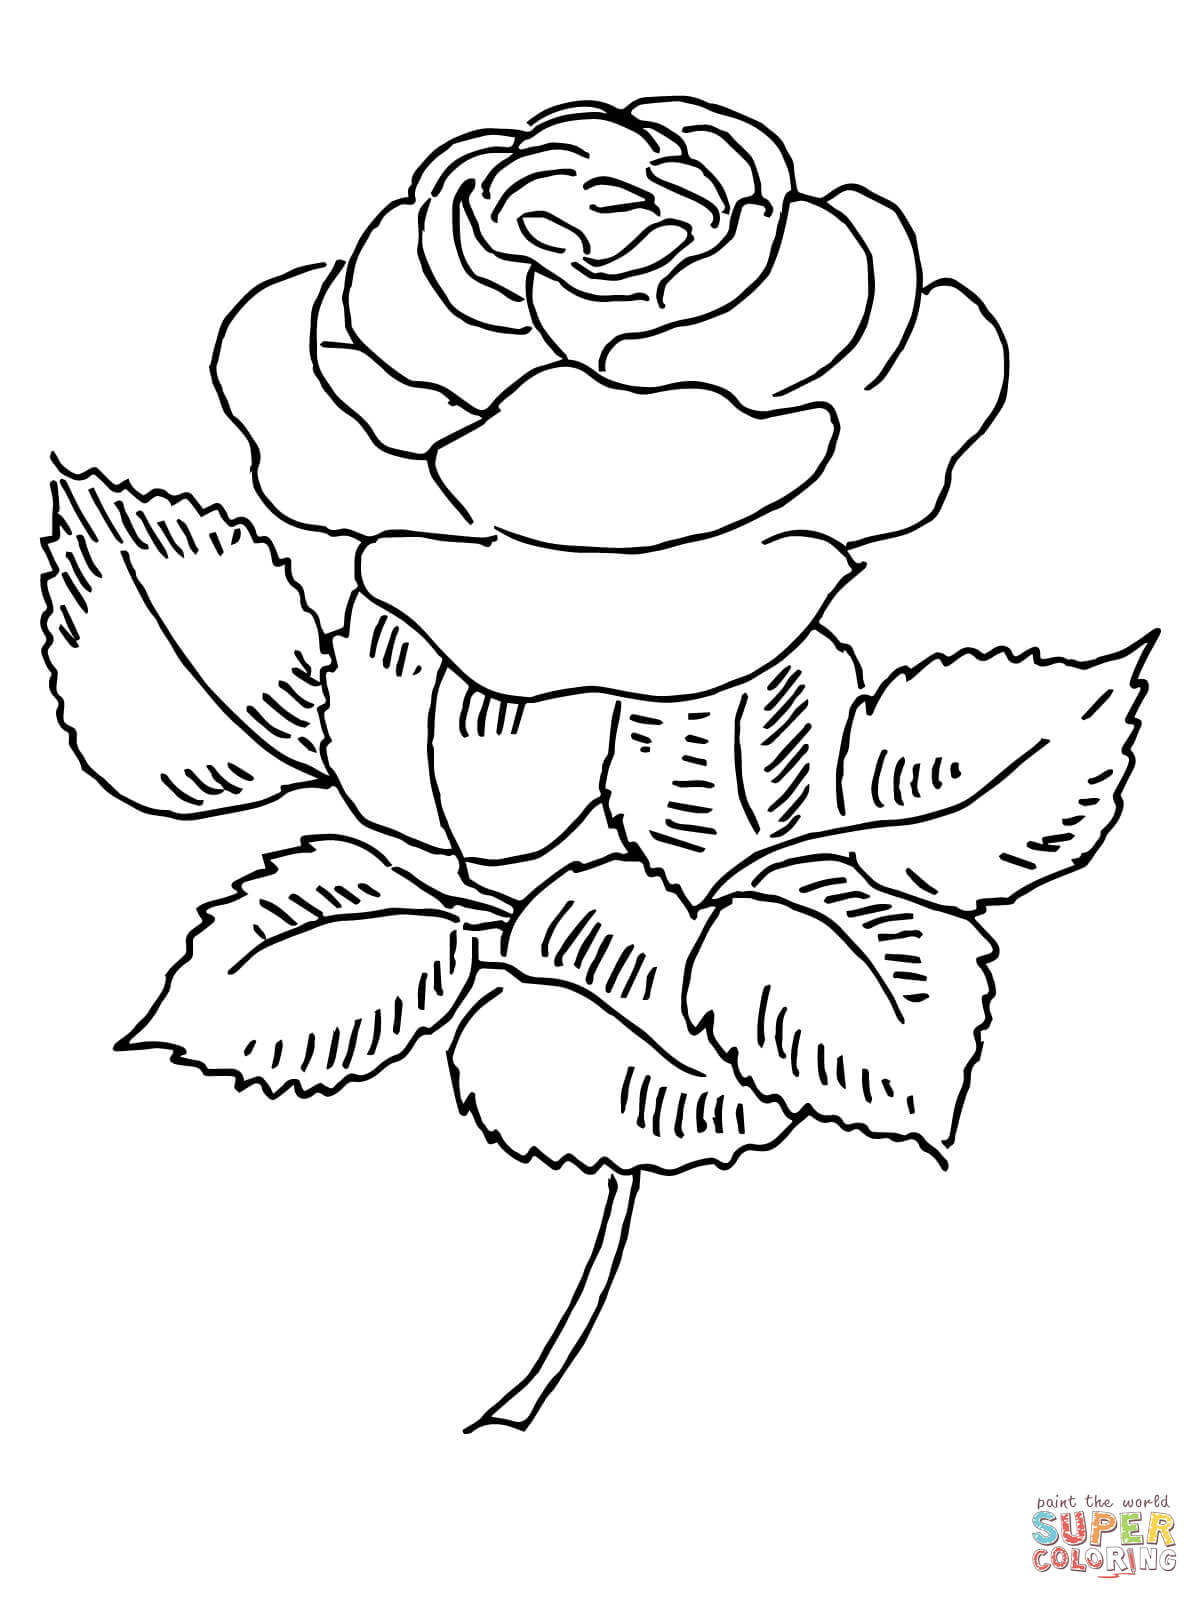 Intricate Rose Coloring Page